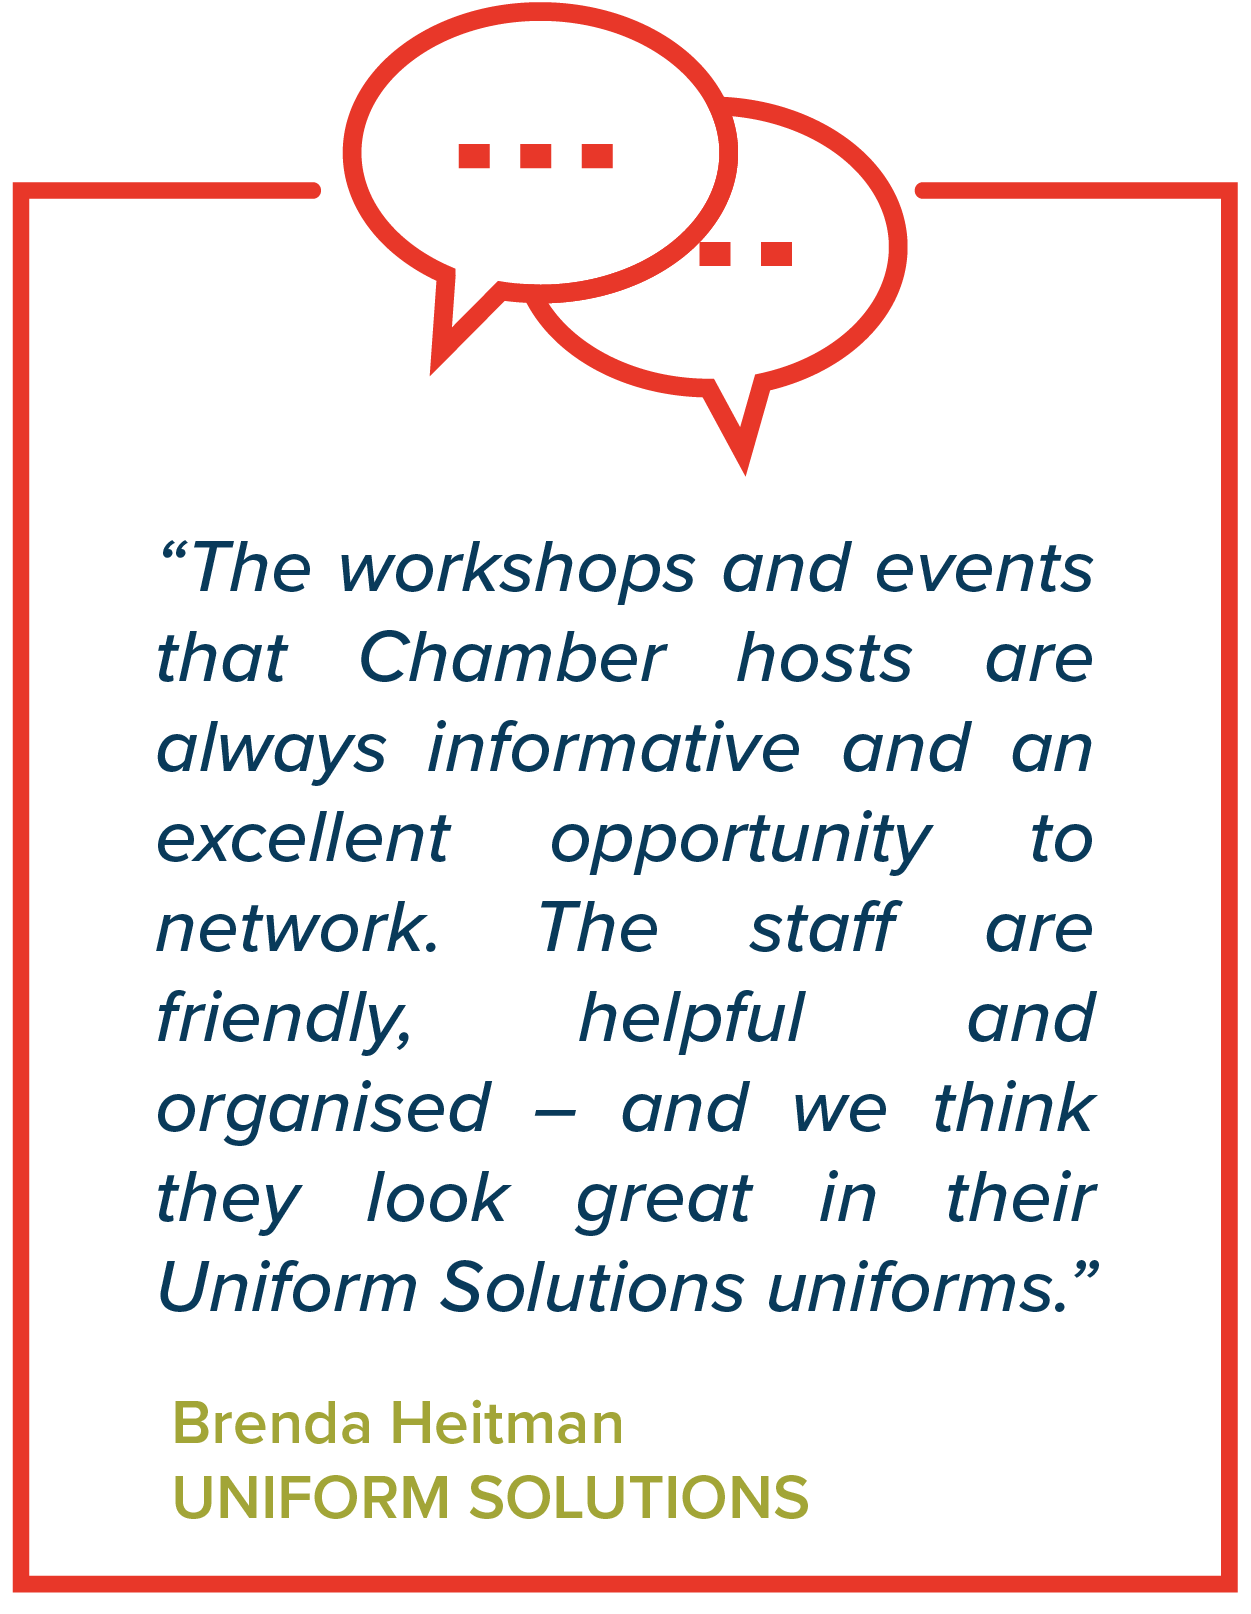 """The workshops and events that Chamber hosts are always informative and an excellent opportunity to network. The staff are friendly, helpful and organised – and we think they look great in their Uniform Solutions uniforms.""   Brenda Heitman, Uniform Solutions"